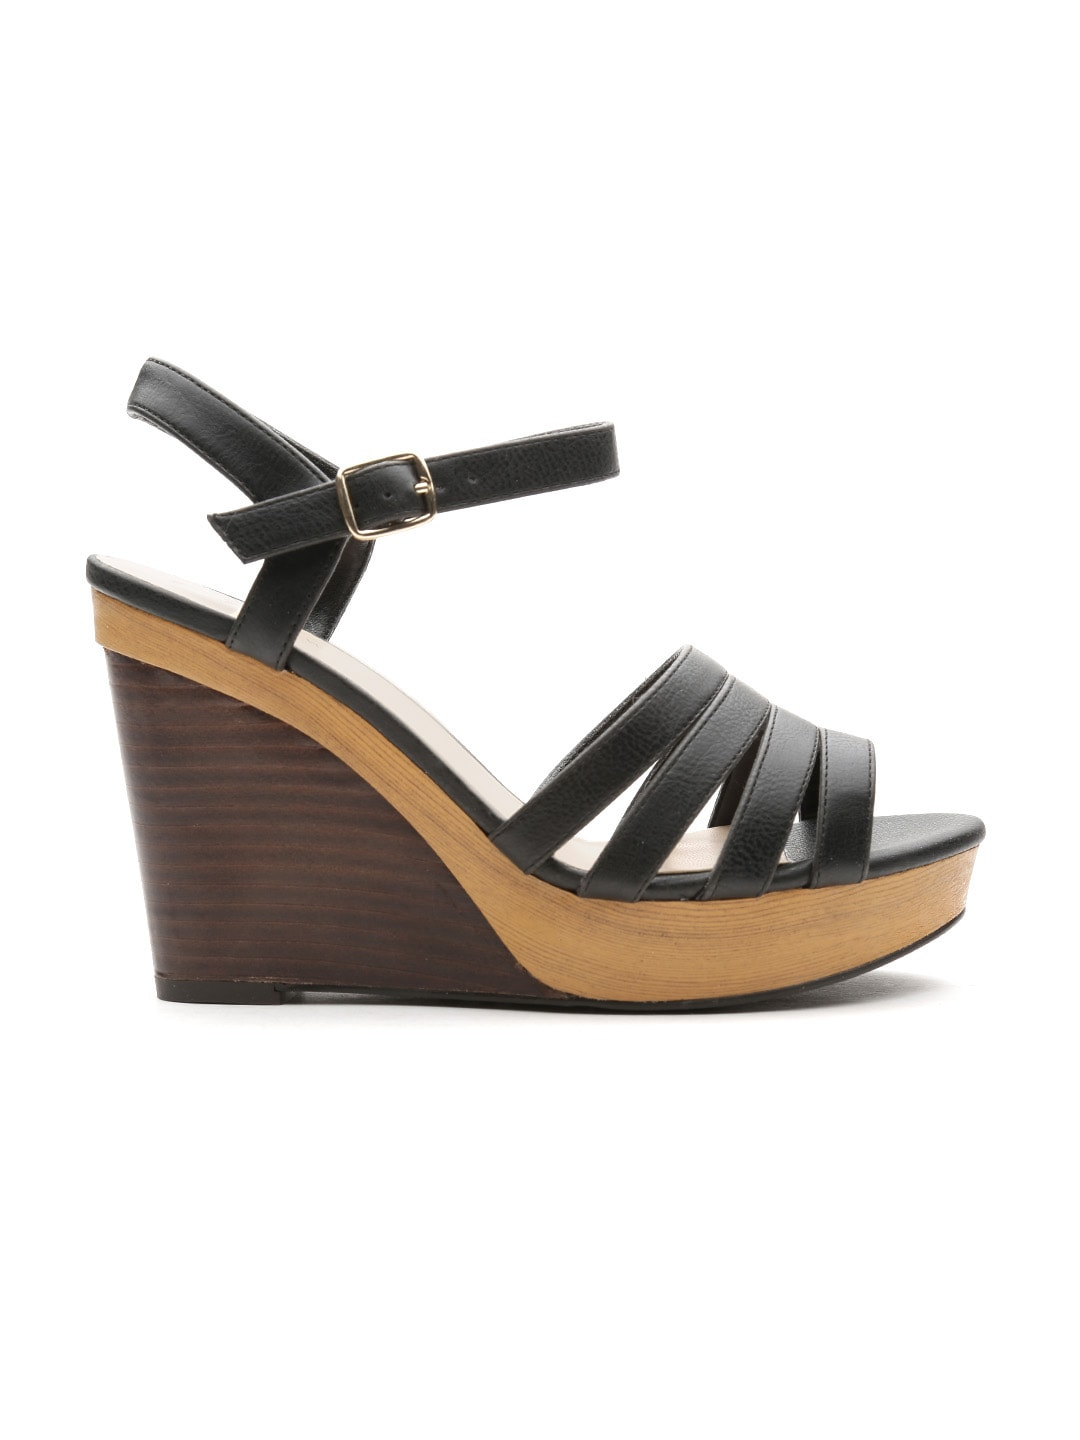 New Look Women Black Wedges